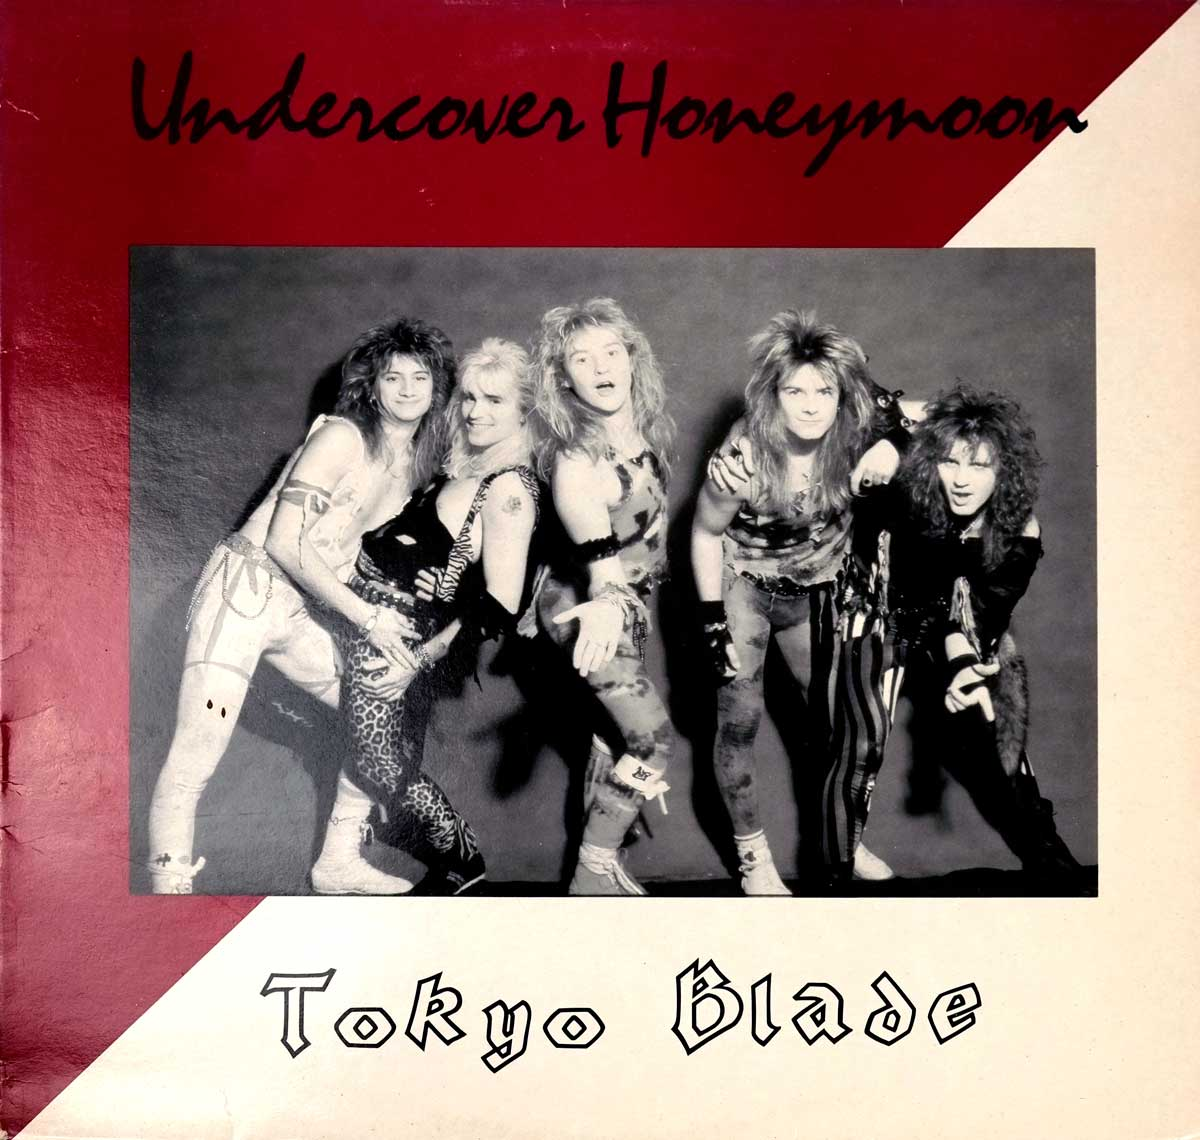 Front Cover Photo Of TOKYO BLADE - Undercover Honeymoon